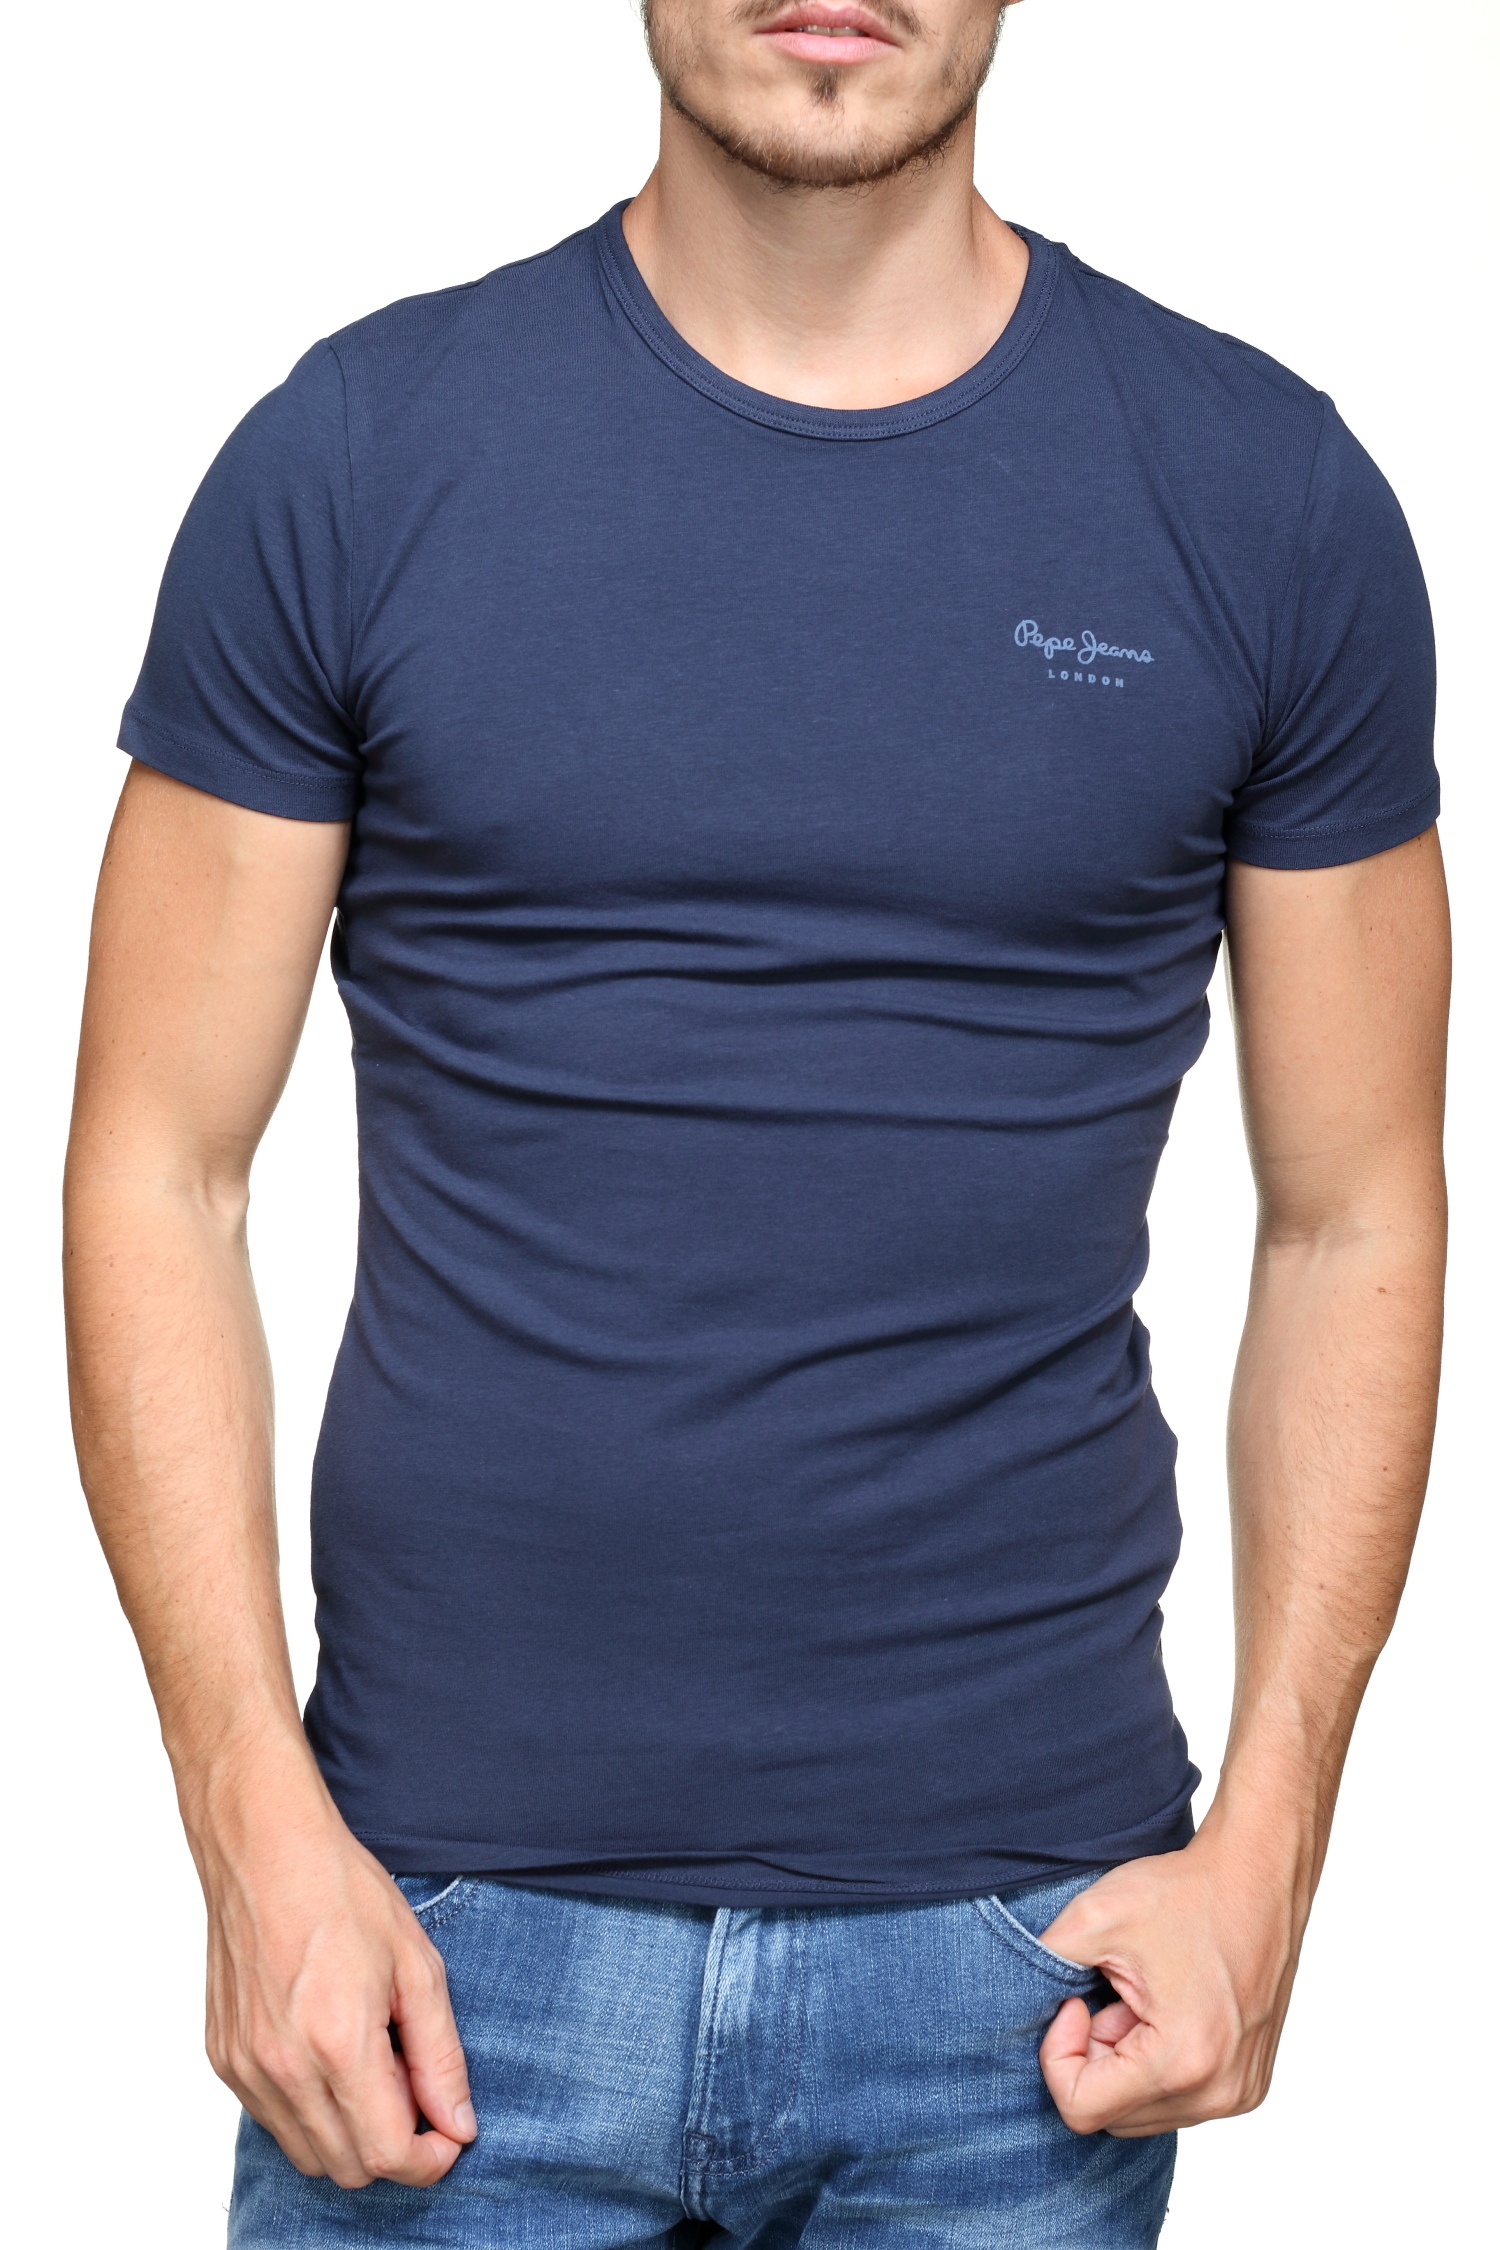 http://www.leadermode.com/156066/pepe-jeans-pm503835-original-basic-595-navy.jpg